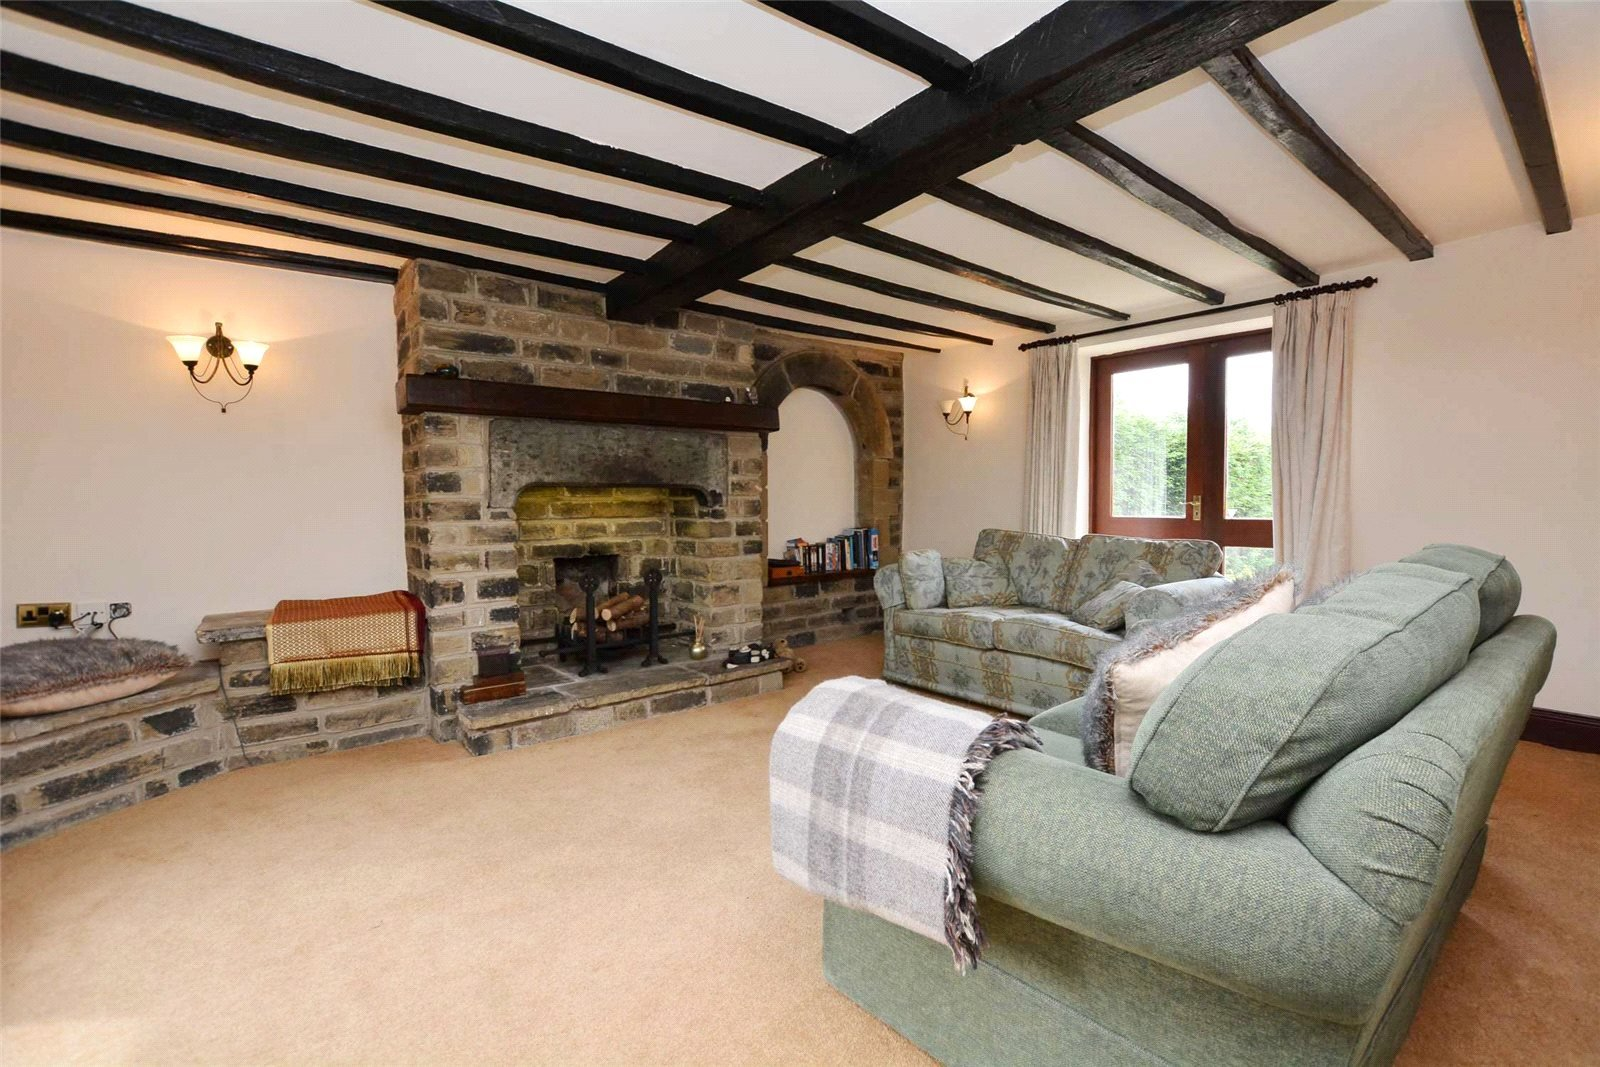 Property for sale in Wortley living room area, exposed beams and large open fire place